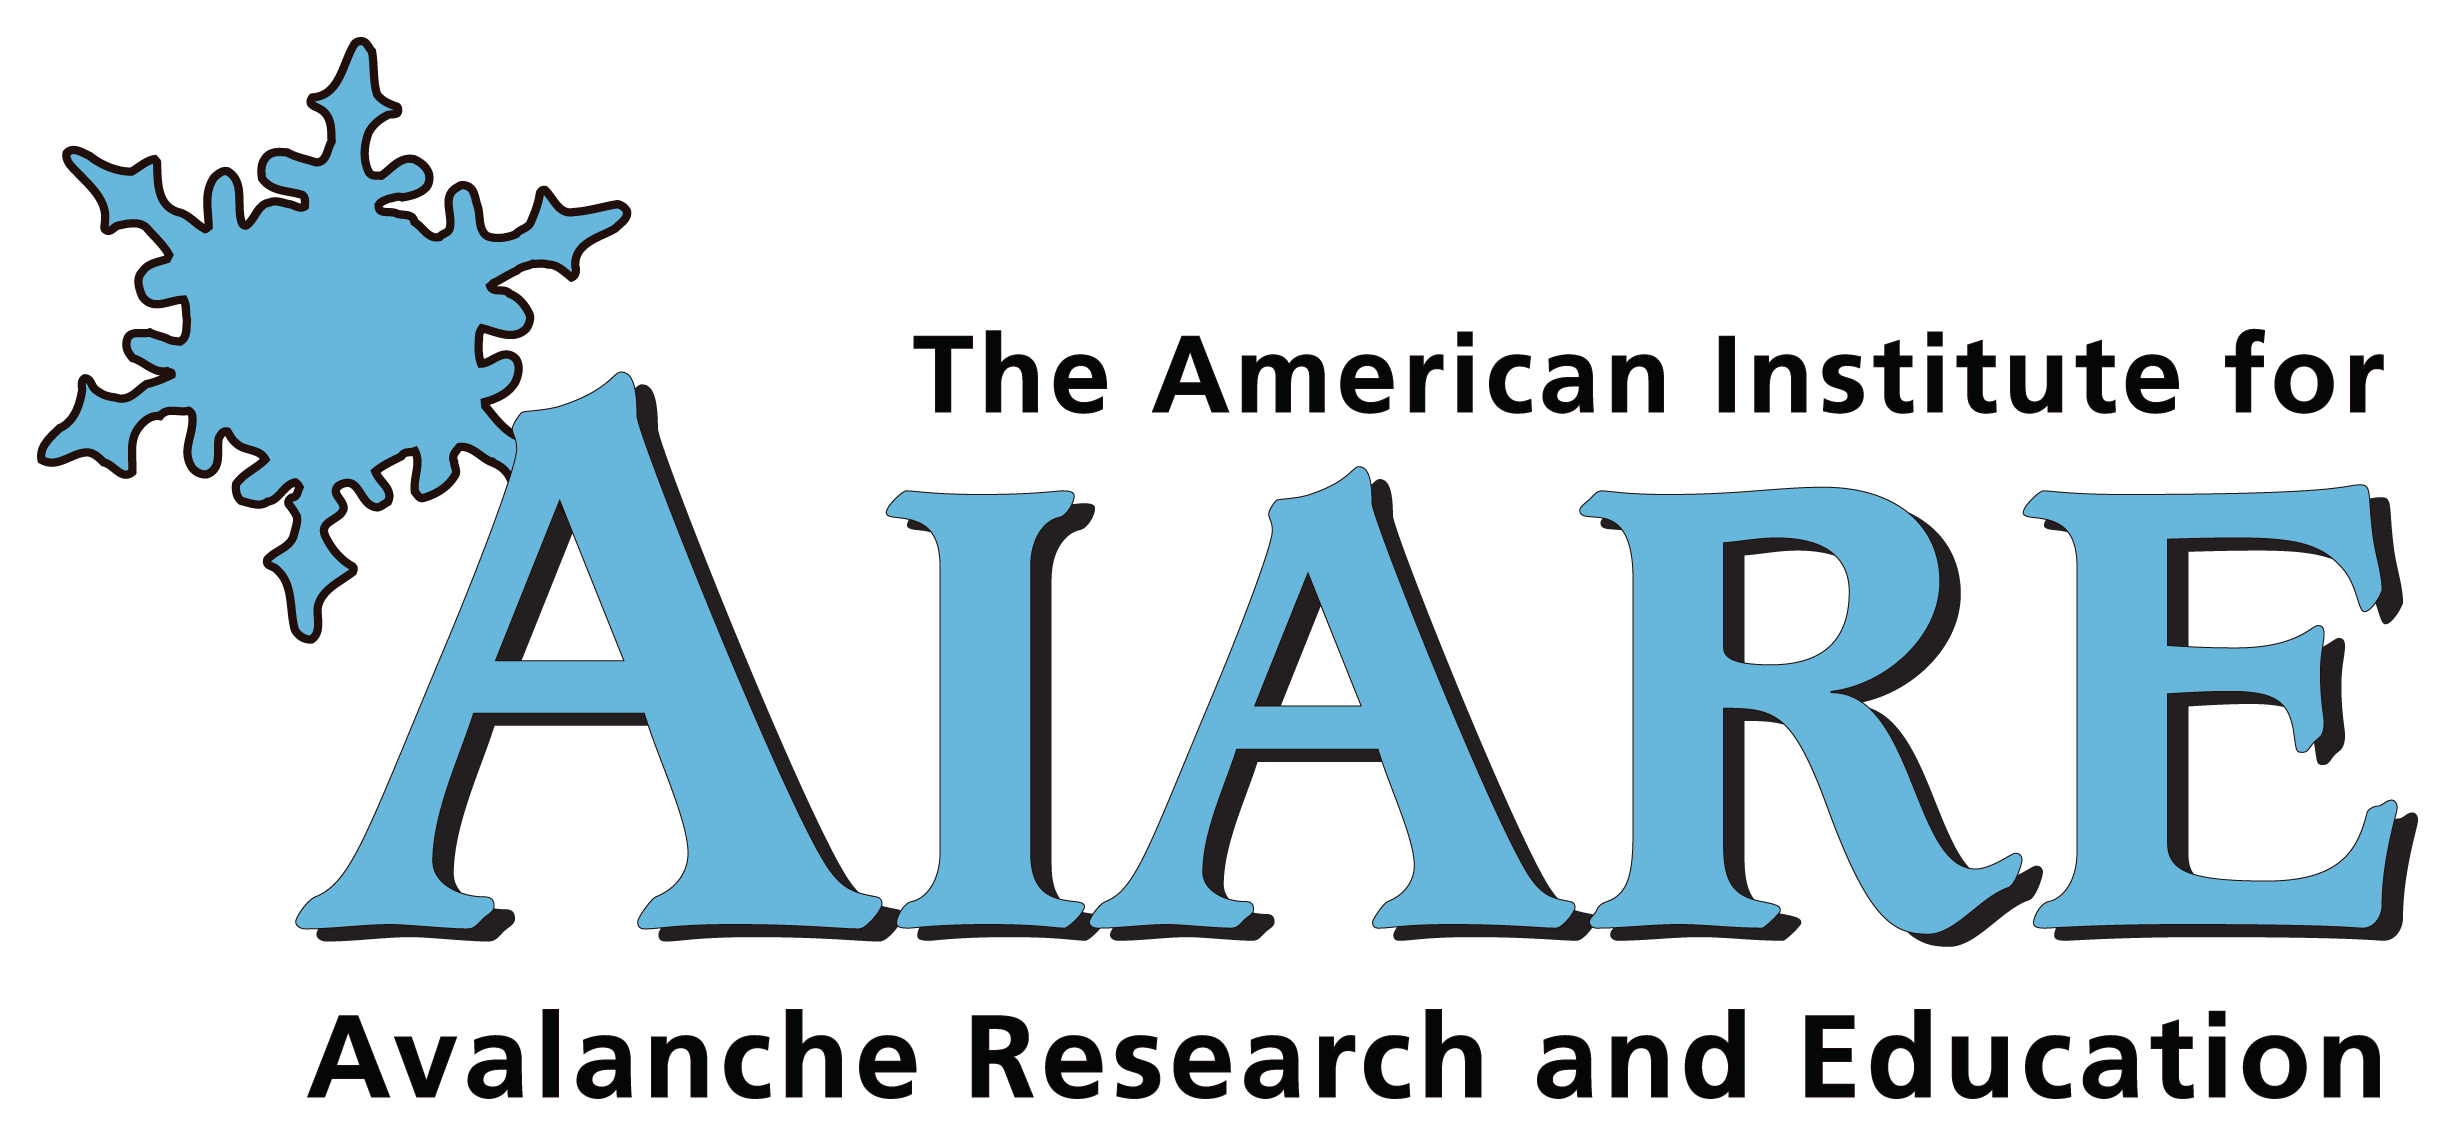 aiare_logo_PNG_clear backgound.png